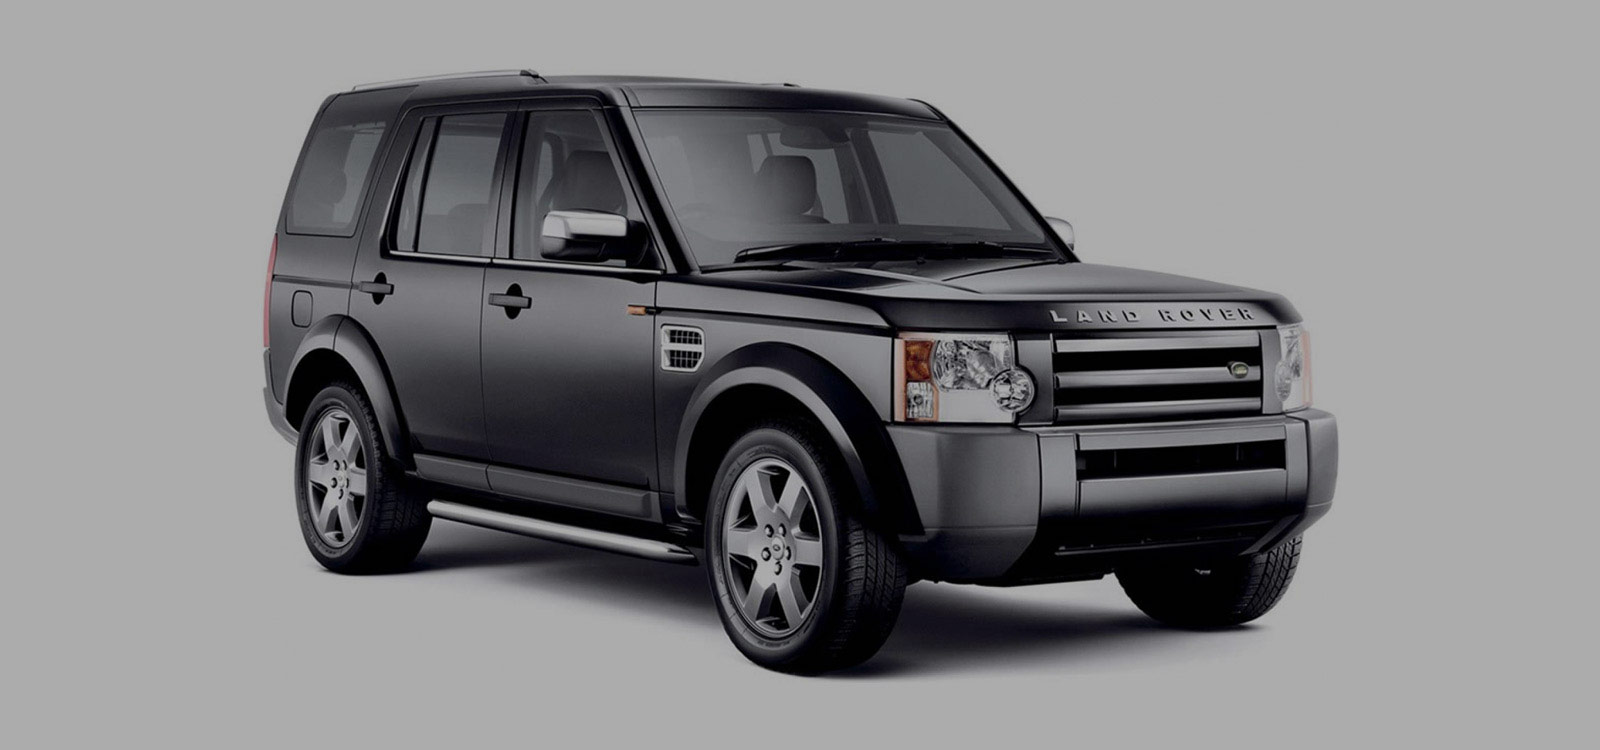 autotrader reviews land ca drive landrover locator final dealer expert of defender rover